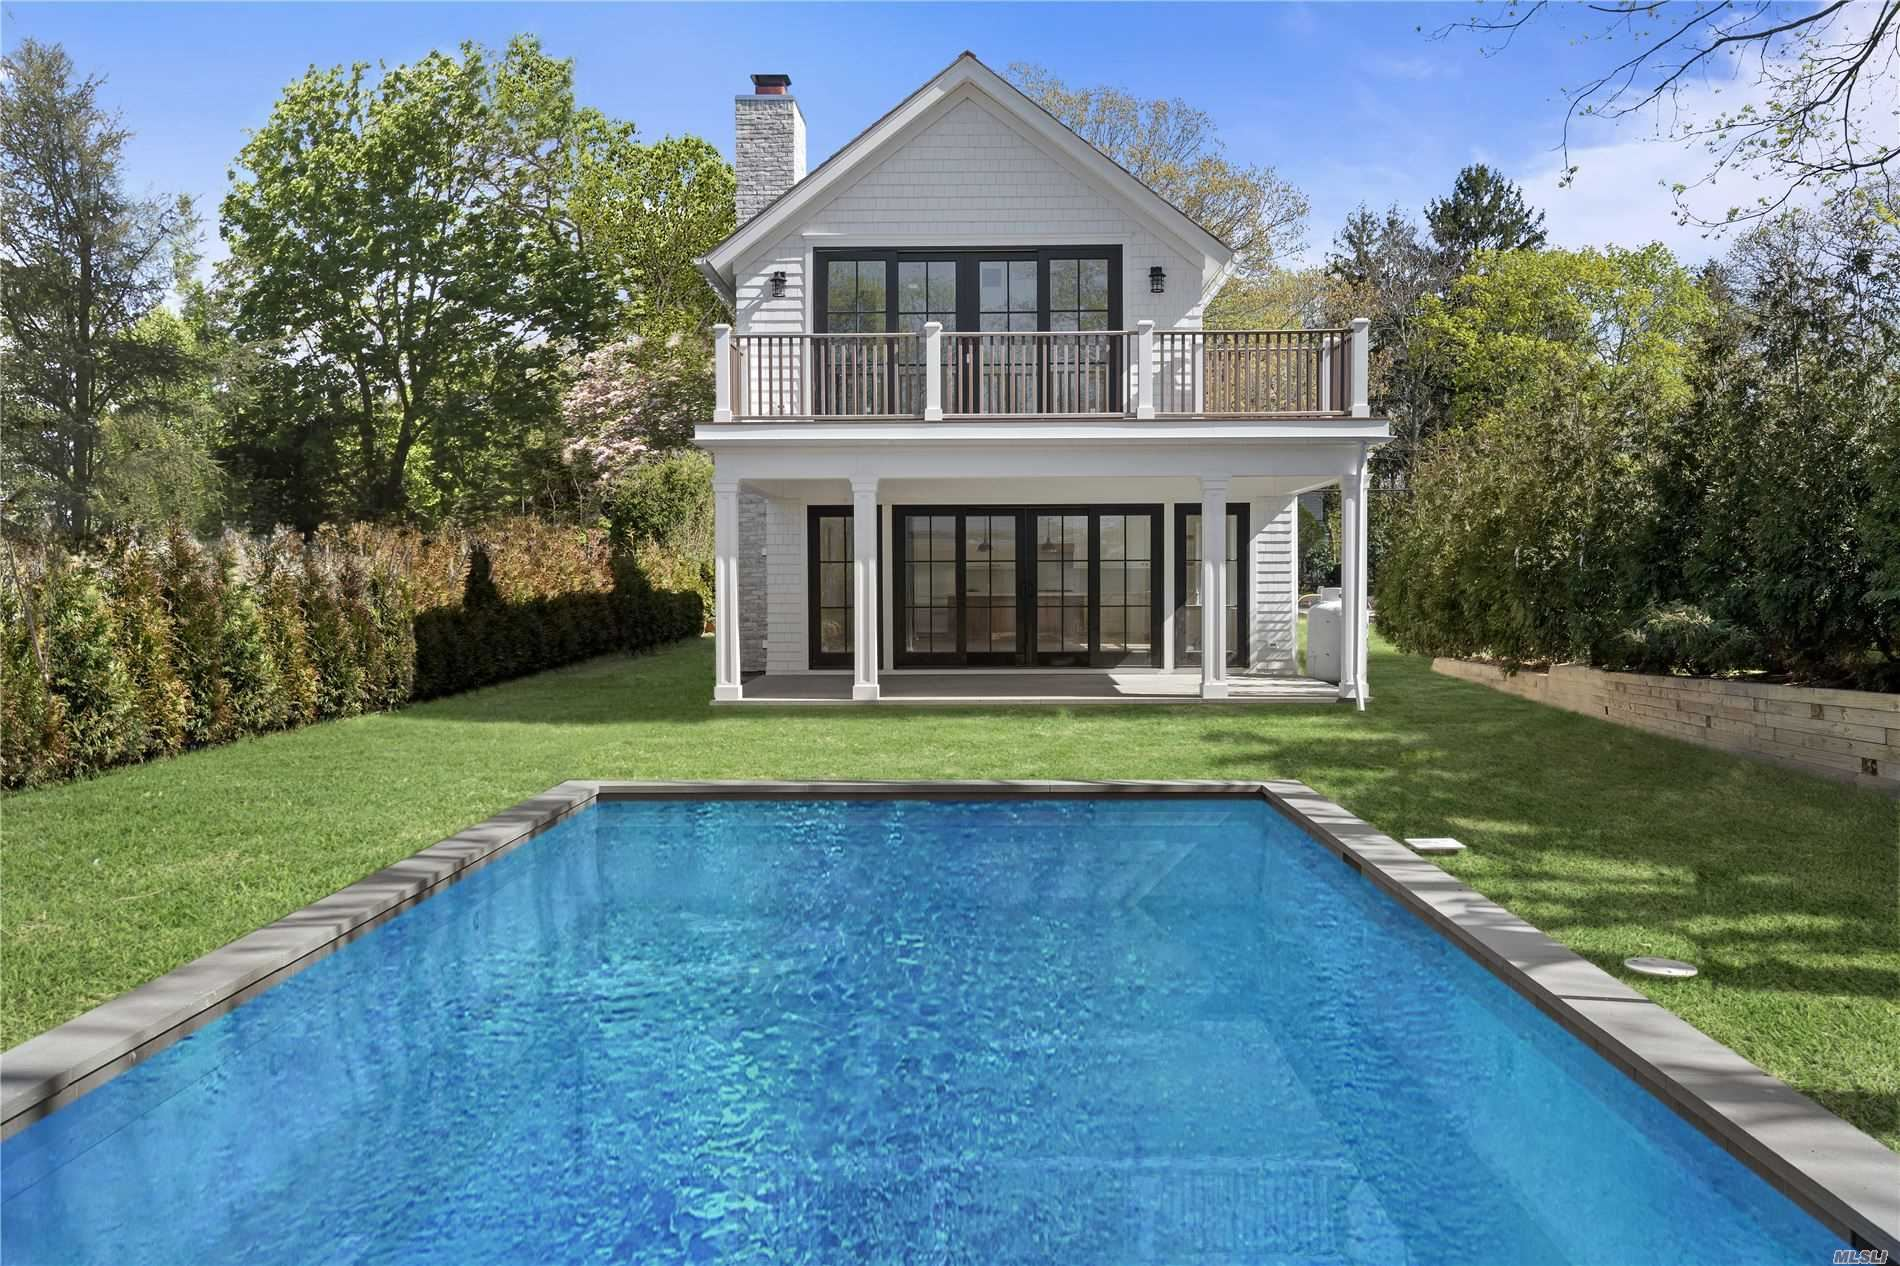 Harrison Ave, Sag Harbor, NY 11963 - MLS#: 3215164